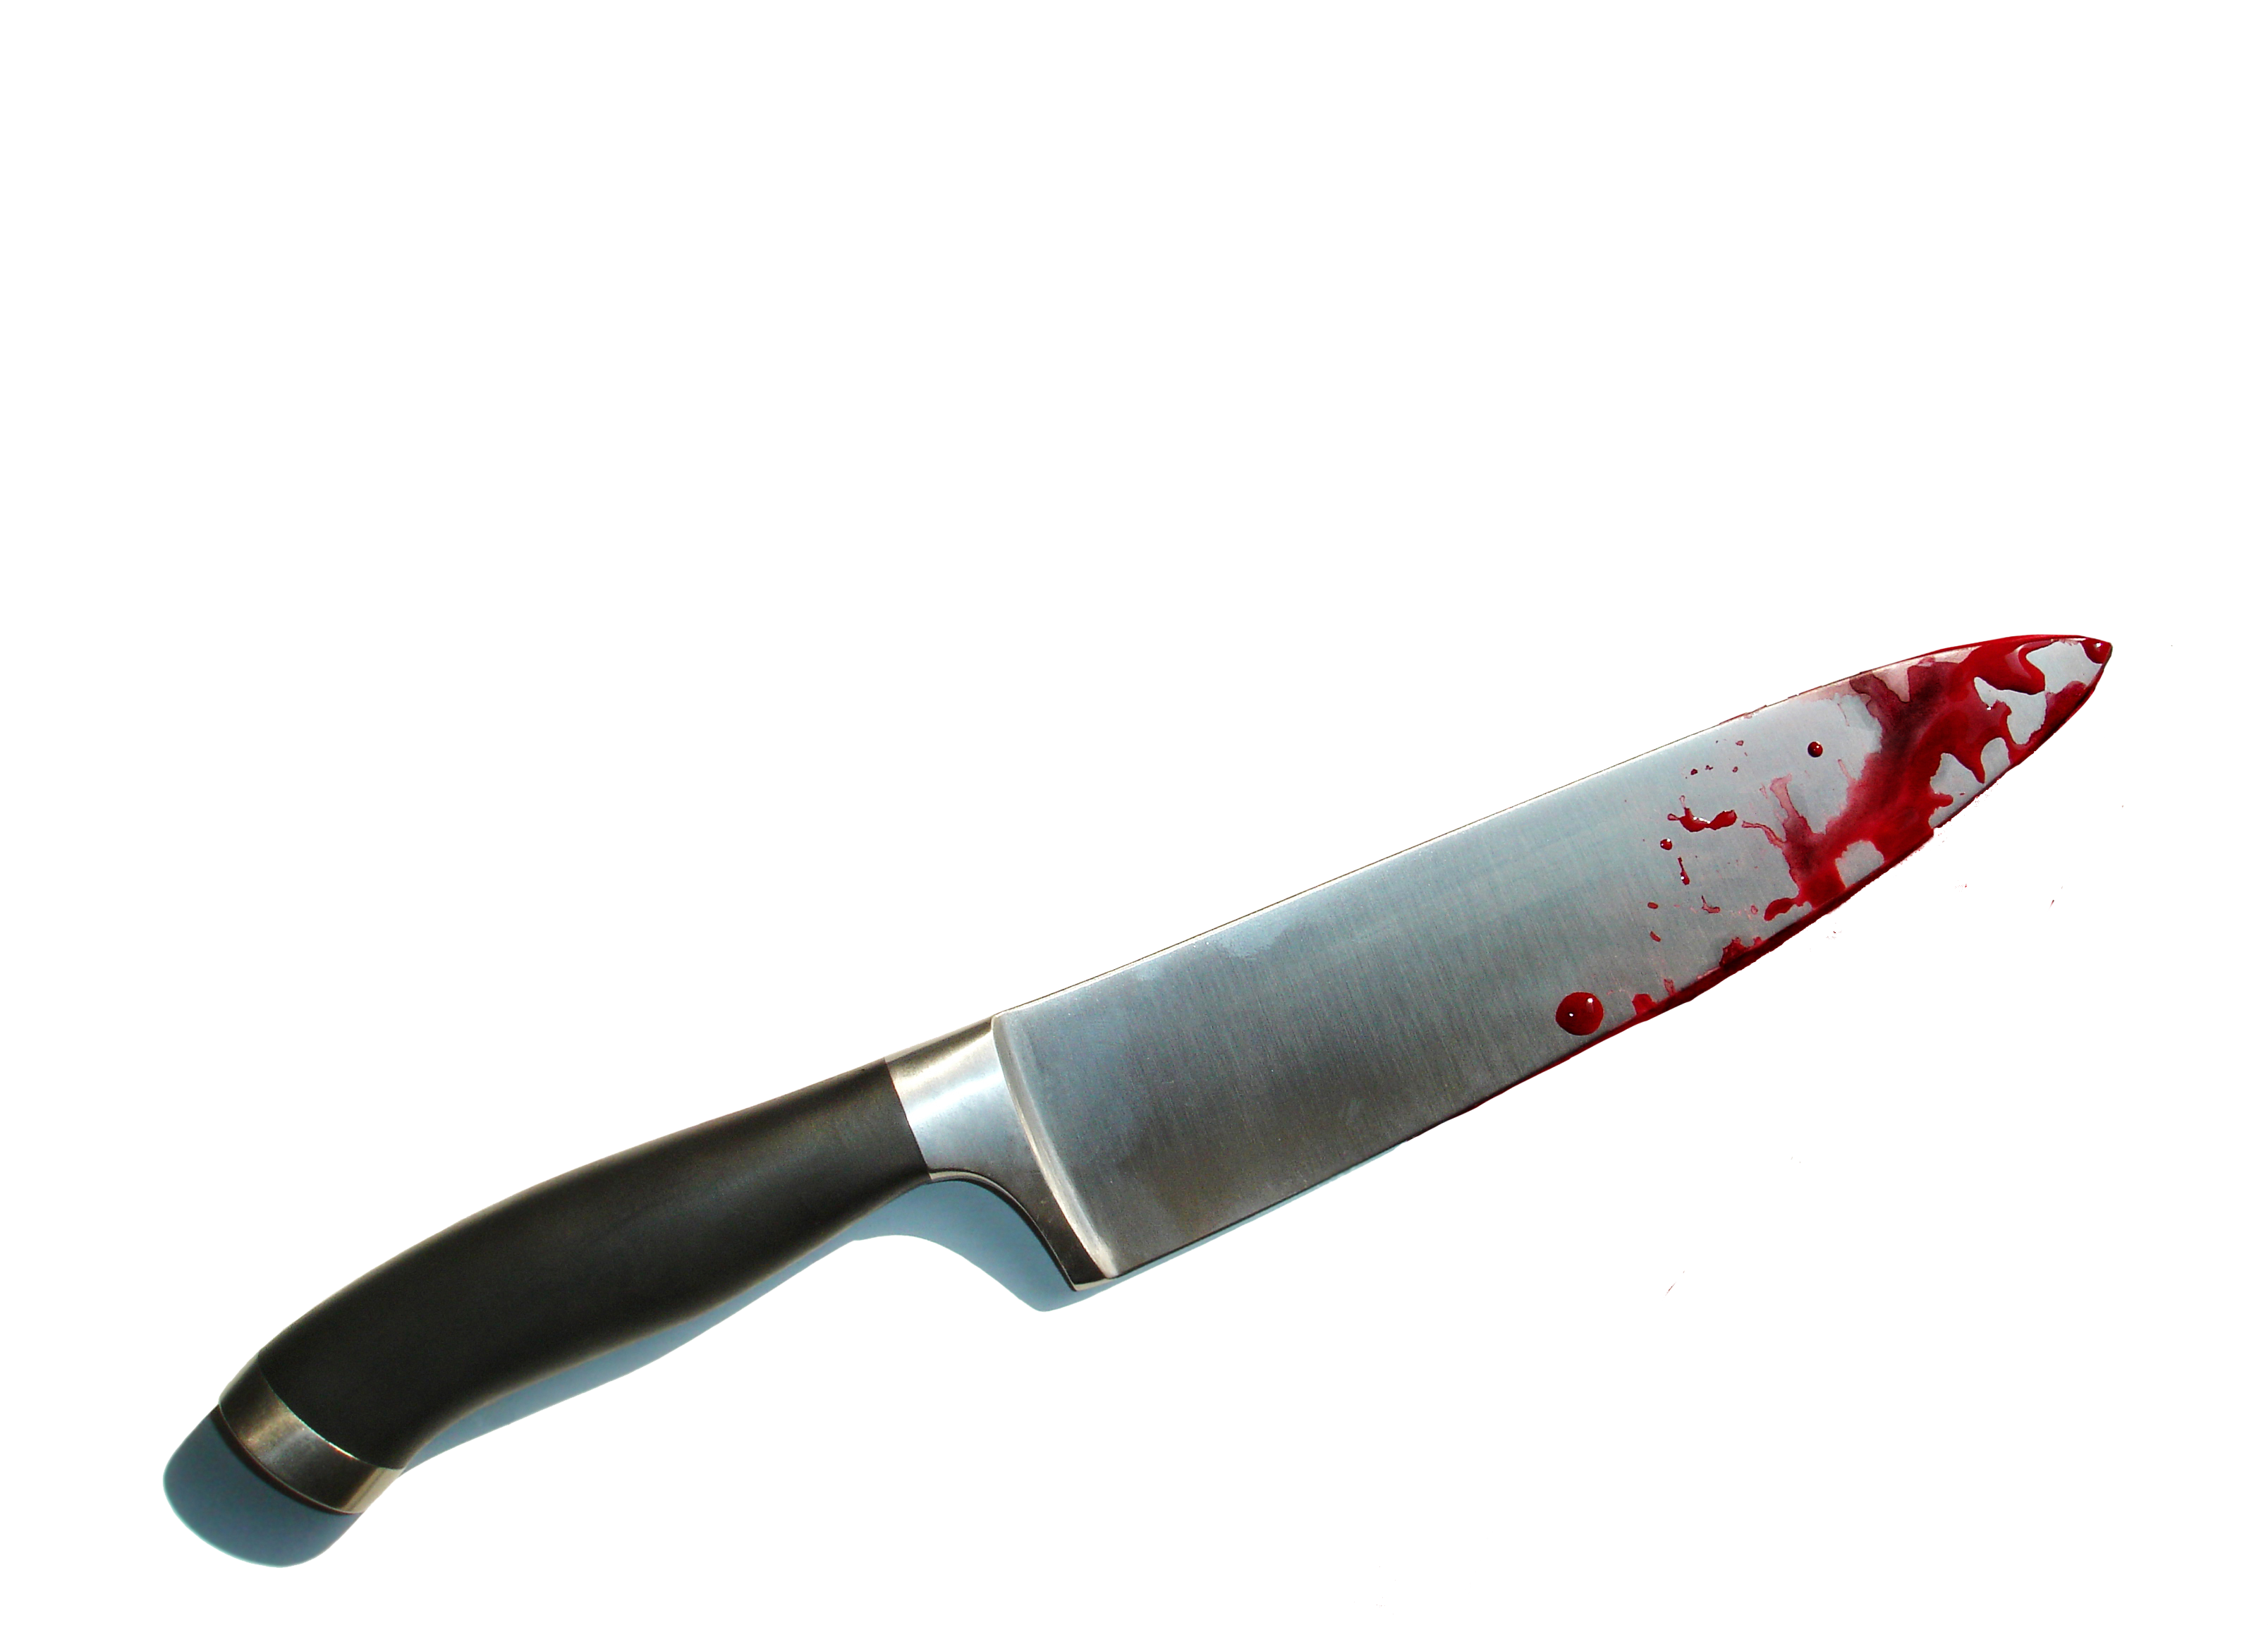 Png Knife Episode Interactive Backgrounds Wattpad Covers Knife